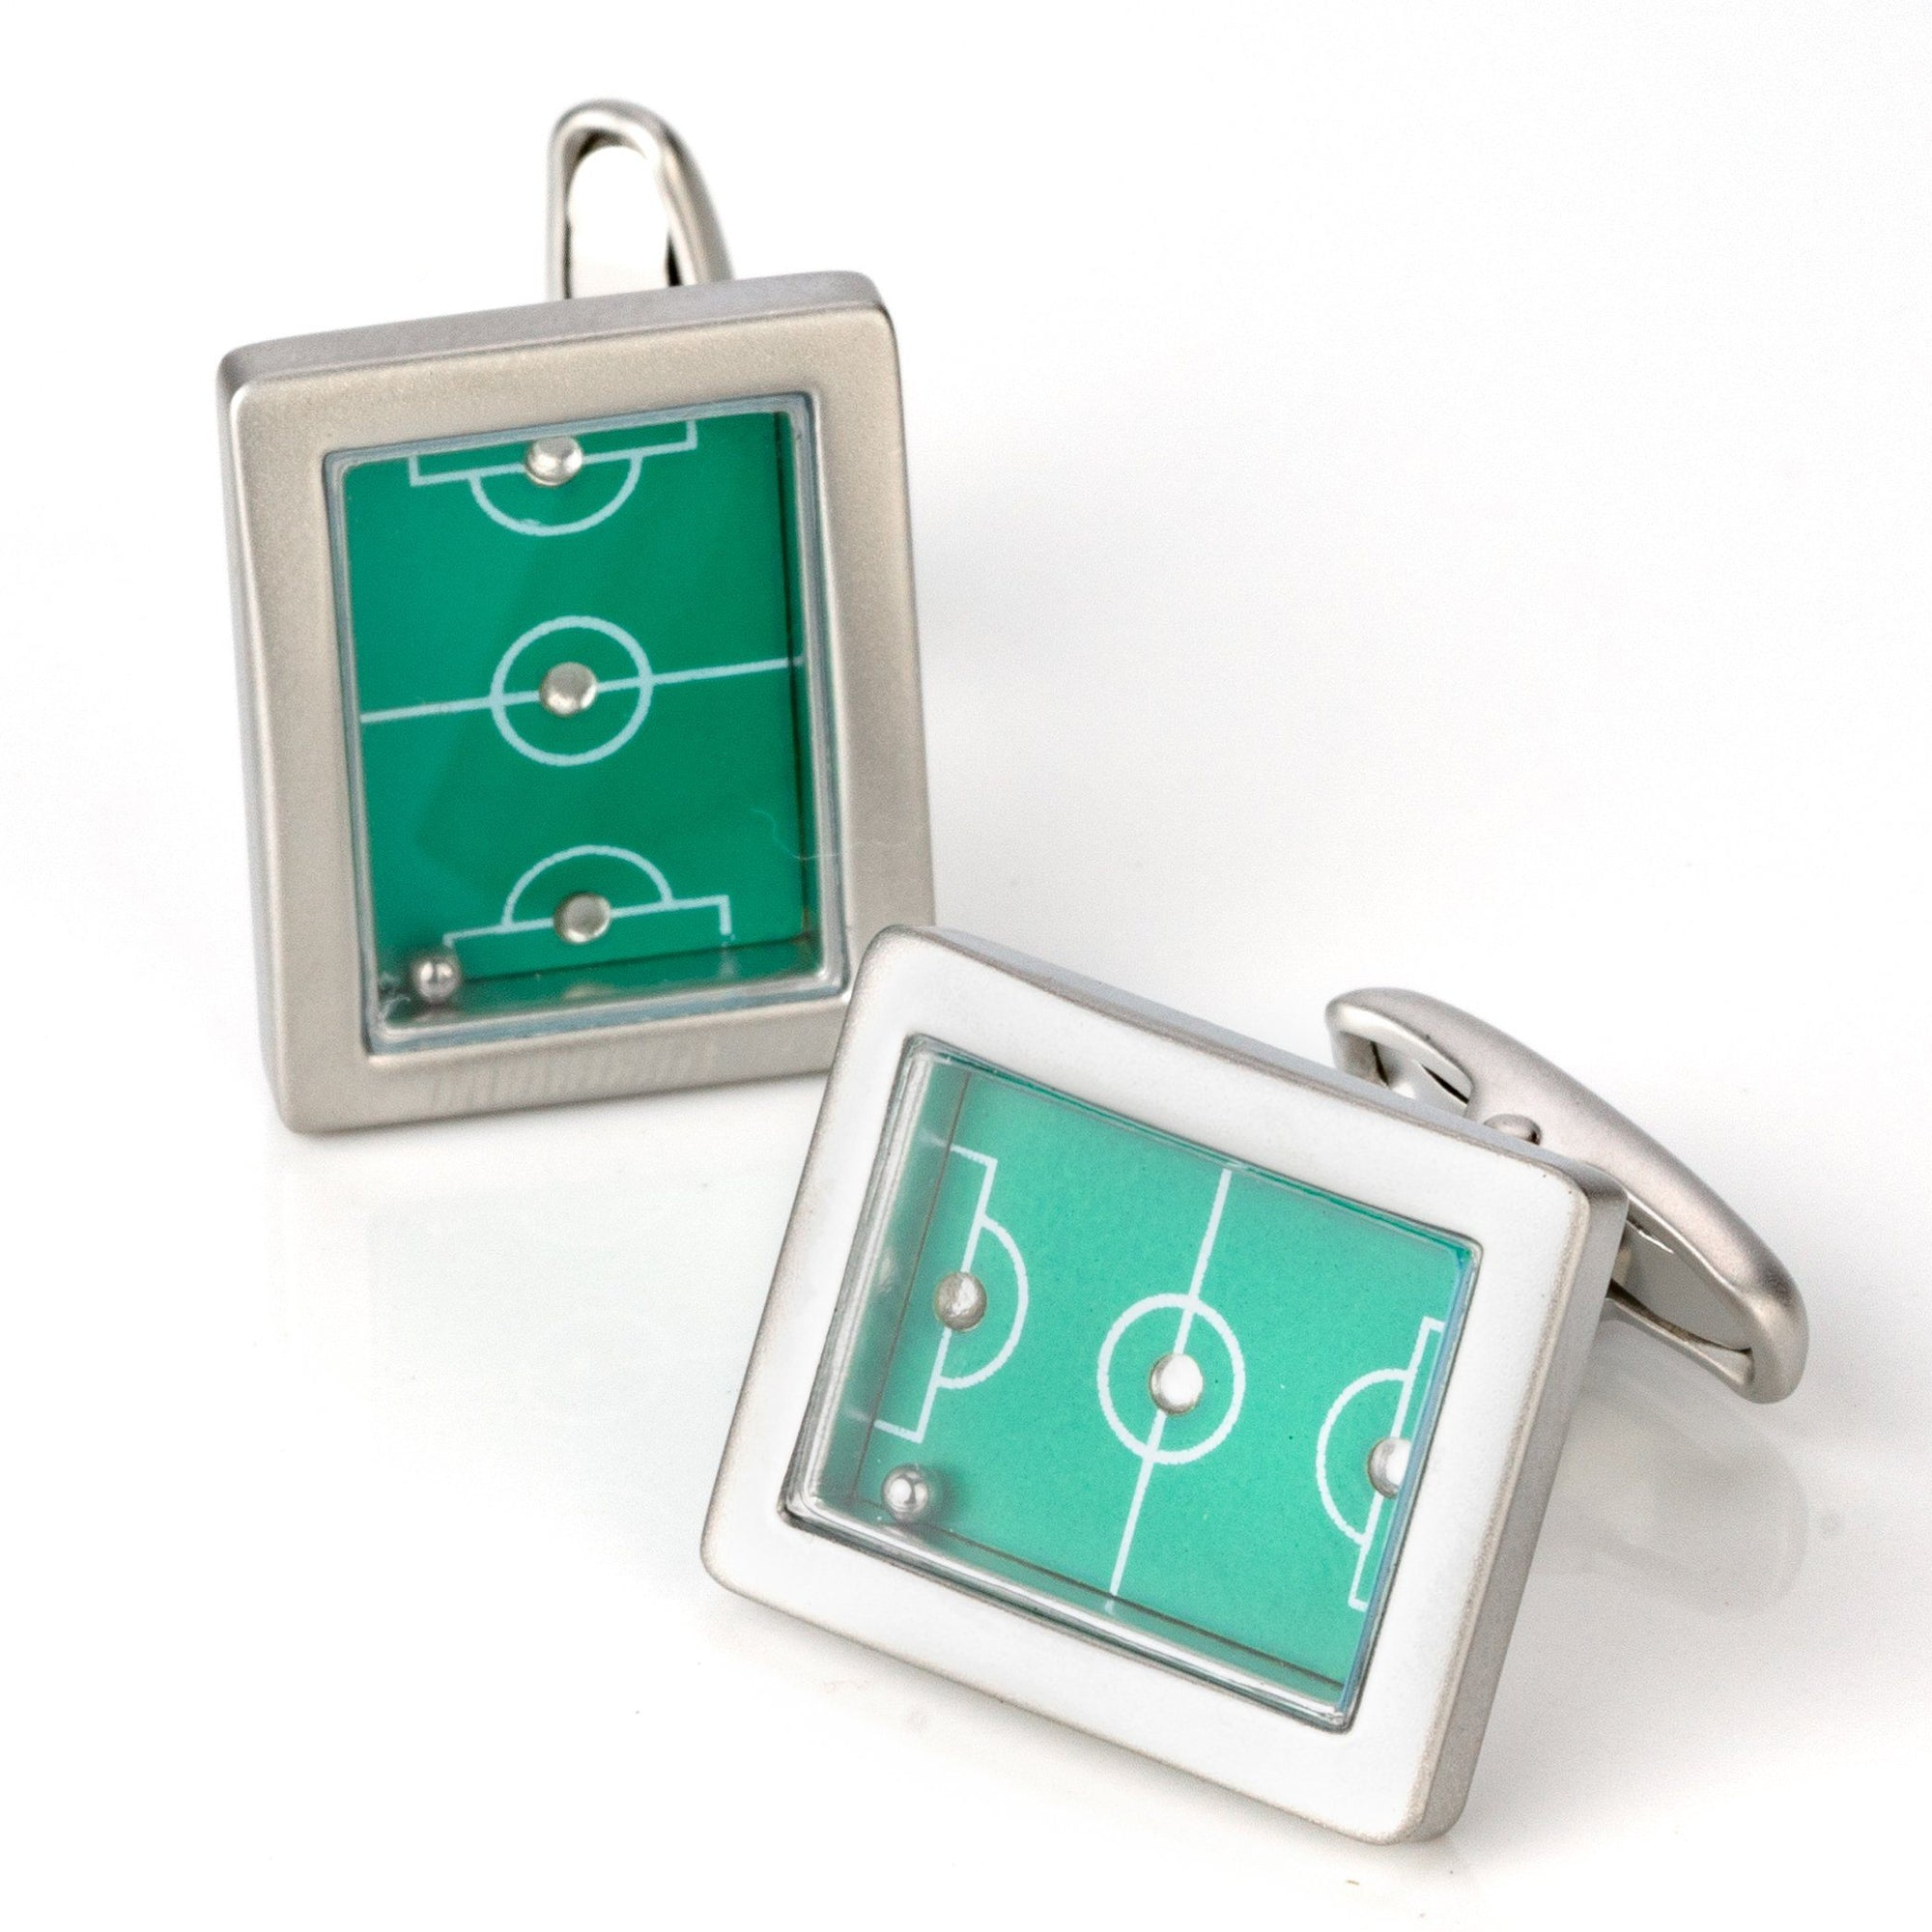 Green Soccer Field Cufflinks Novelty Cufflinks Clinks Australia